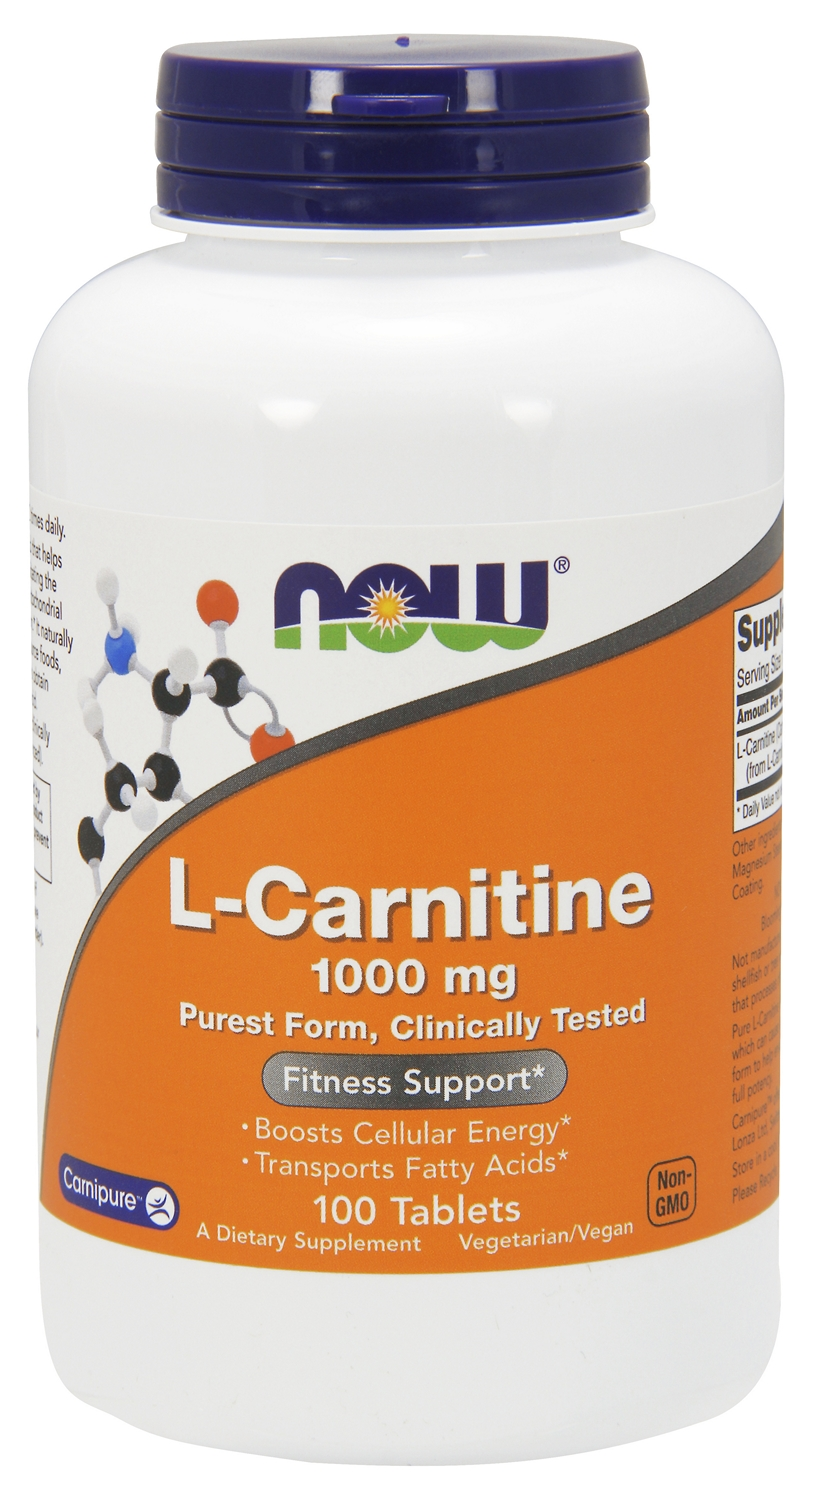 L-Carnitine 1000 mg 100 tabs by NOW